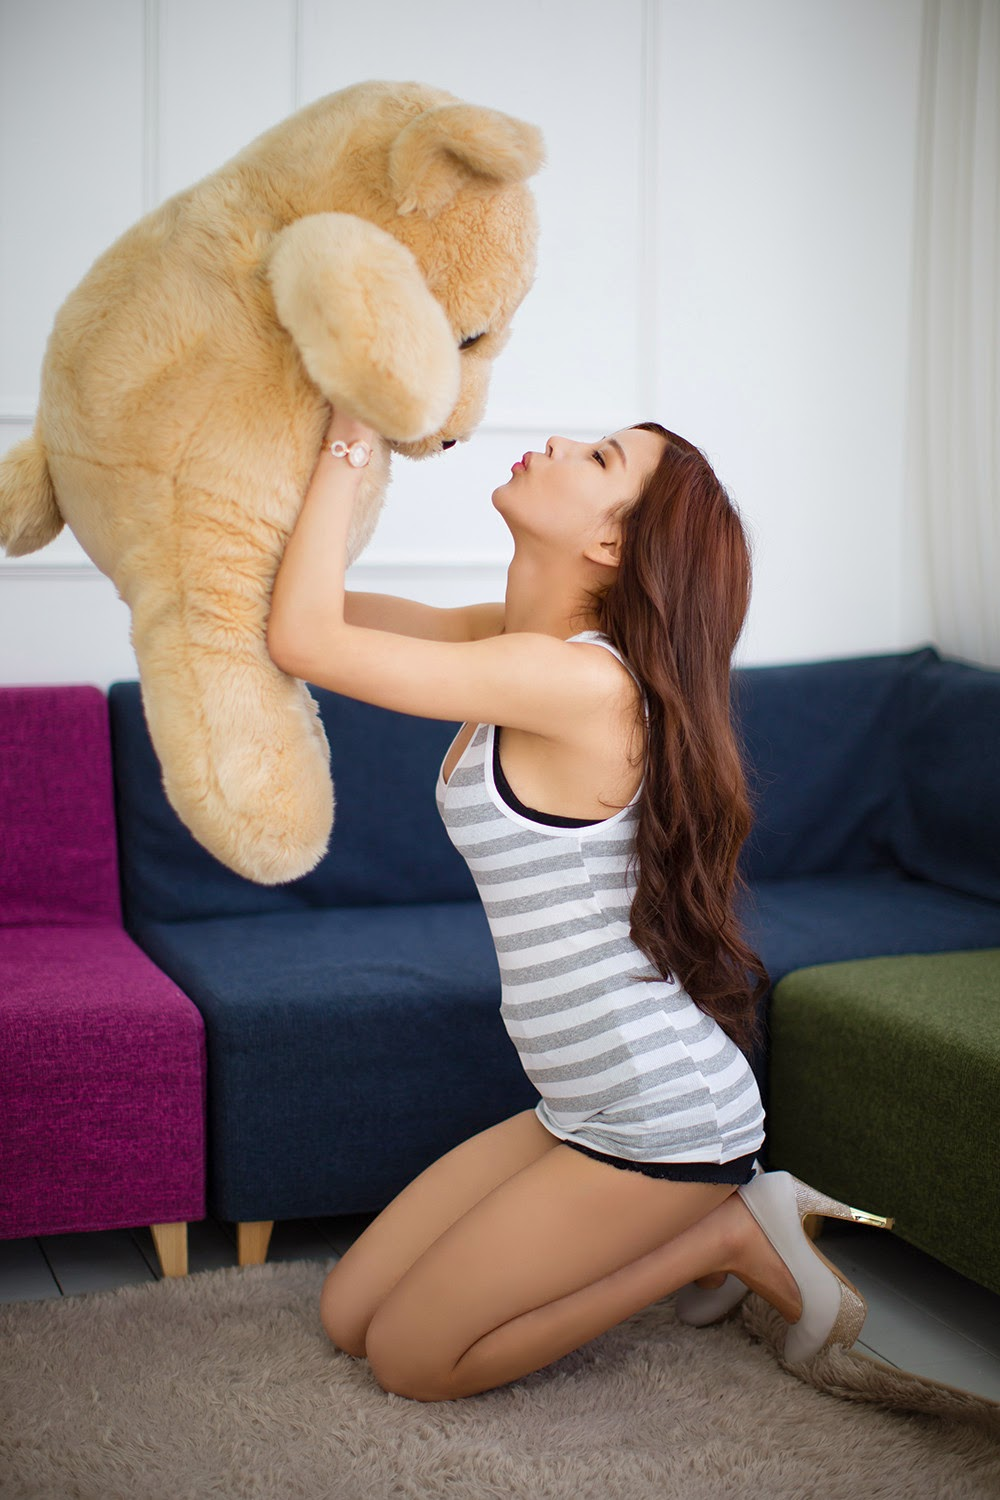 3 Morning Photo Session With Gorgeous Yeon Ji Eun - very cute asian girl-girlcute4u.blogspot.com